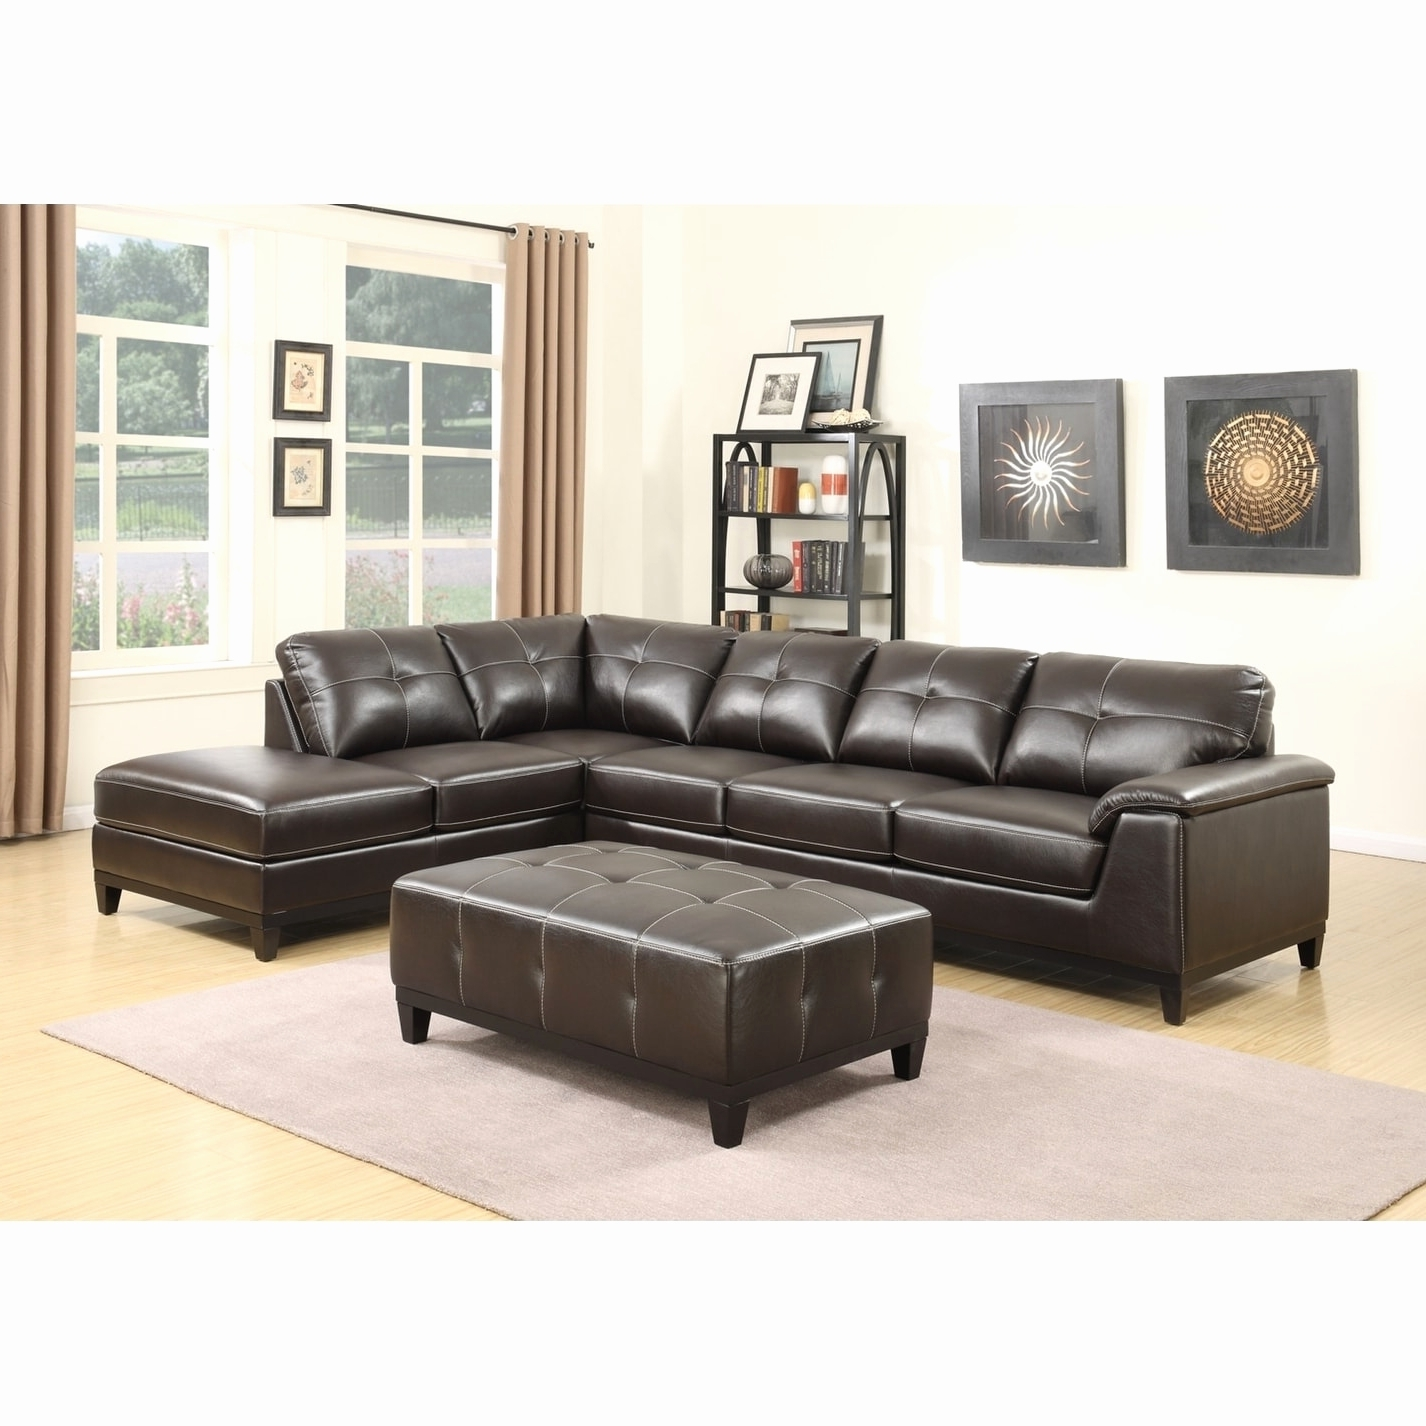 Royal Furniture Living Room Sets Fresh Royal Furniture Living Room With Regard To Widely Used Royal Furniture Sectional Sofas (View 10 of 20)